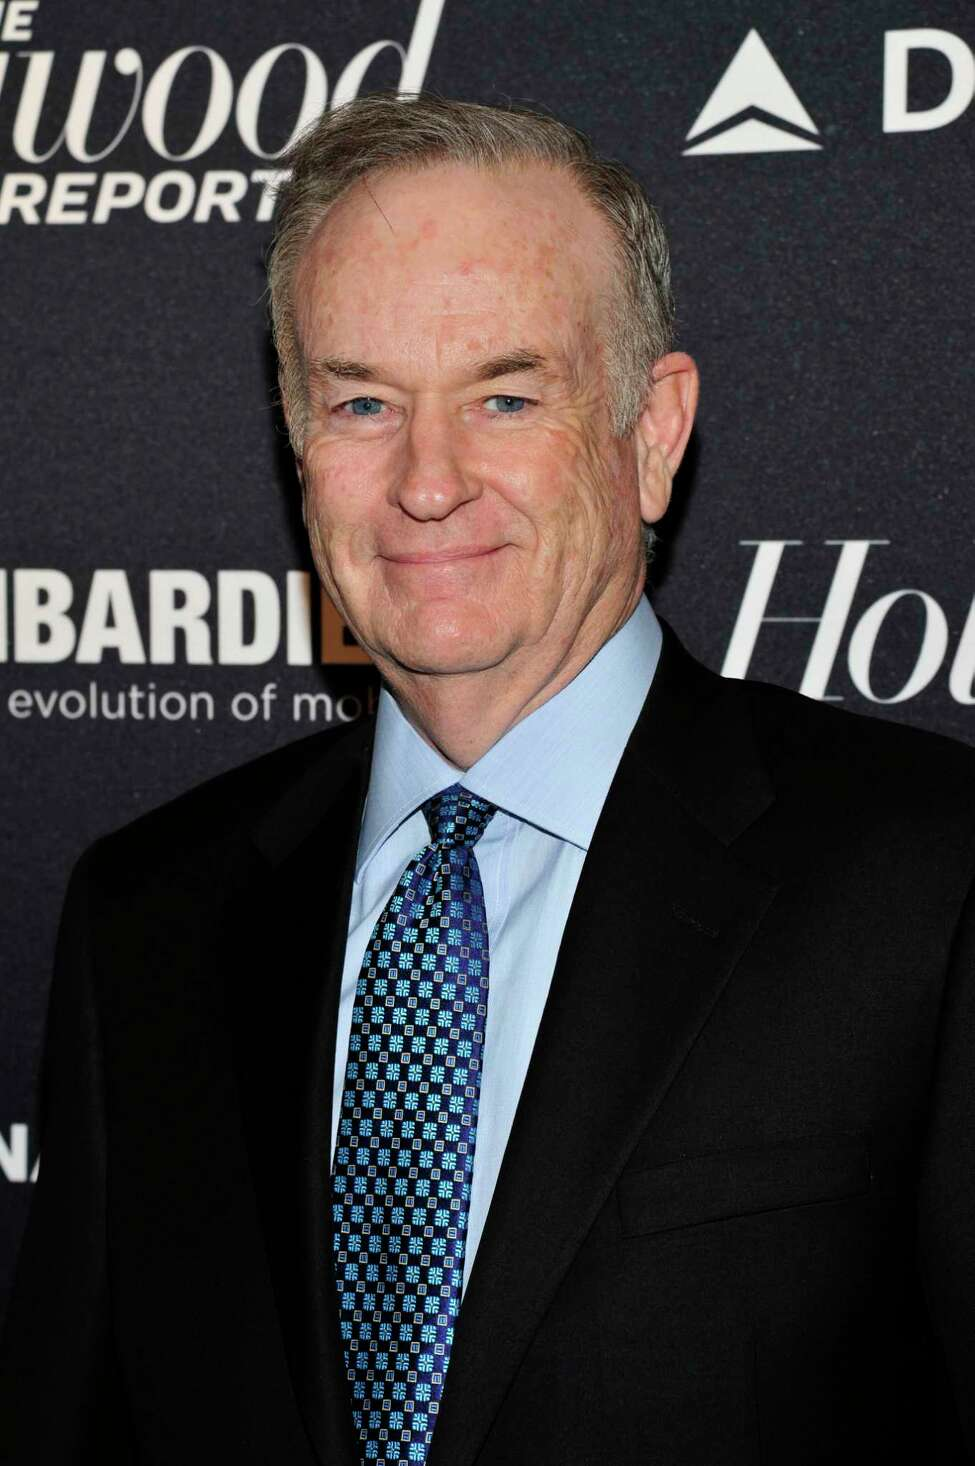 Bill O'Reilly seen on the red carpet for The Hollywood Reporter Celebrates the 35 Most Powerful People in Media, on April 10th, 2013, in New York. (Photo by Charles Sykes/Invision for The Hollywood Reporter/AP Images)